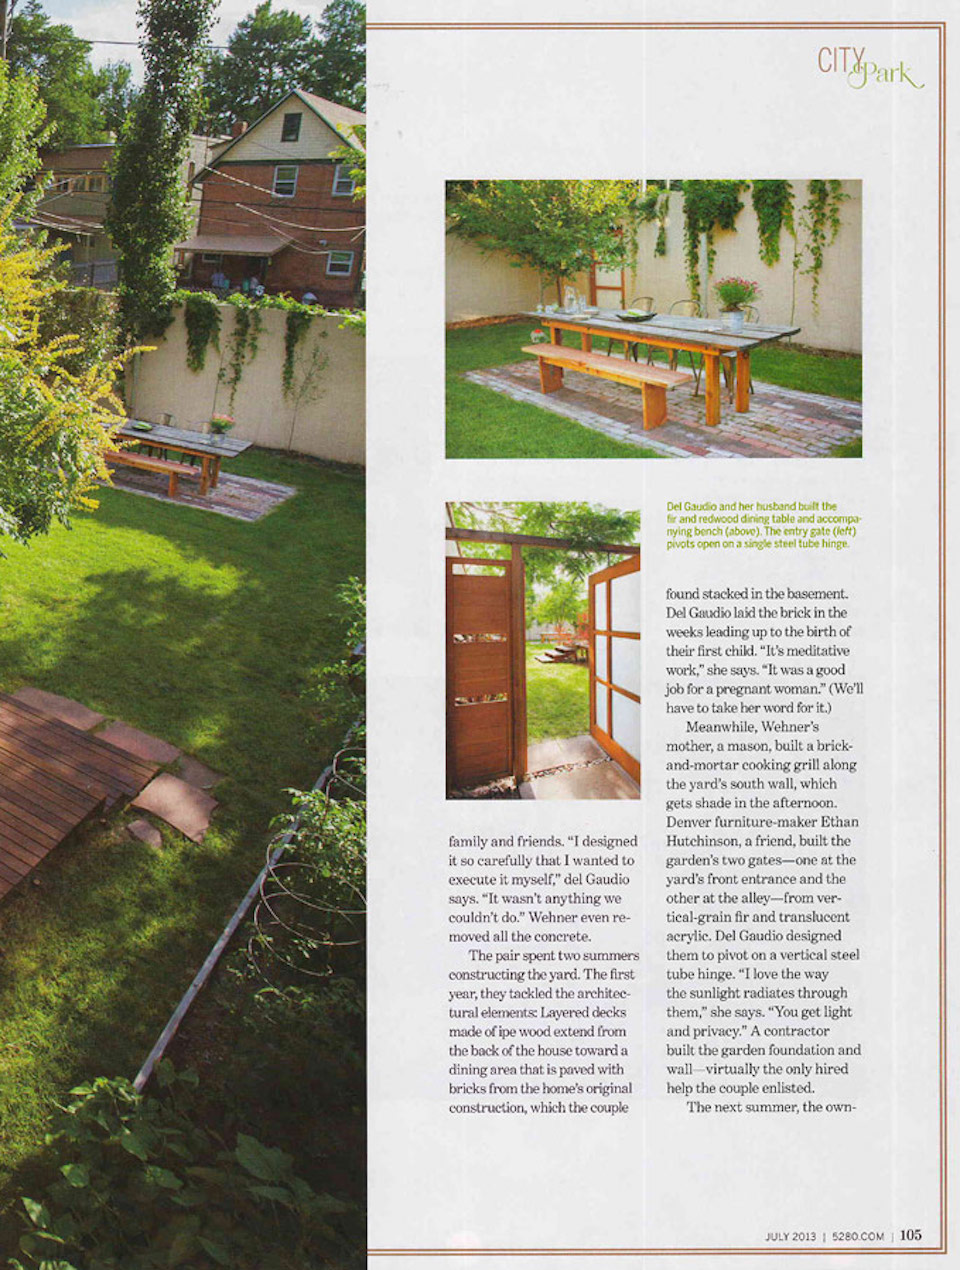 5280 Top of the Town   Press for Renée del Gaudio Architecture.